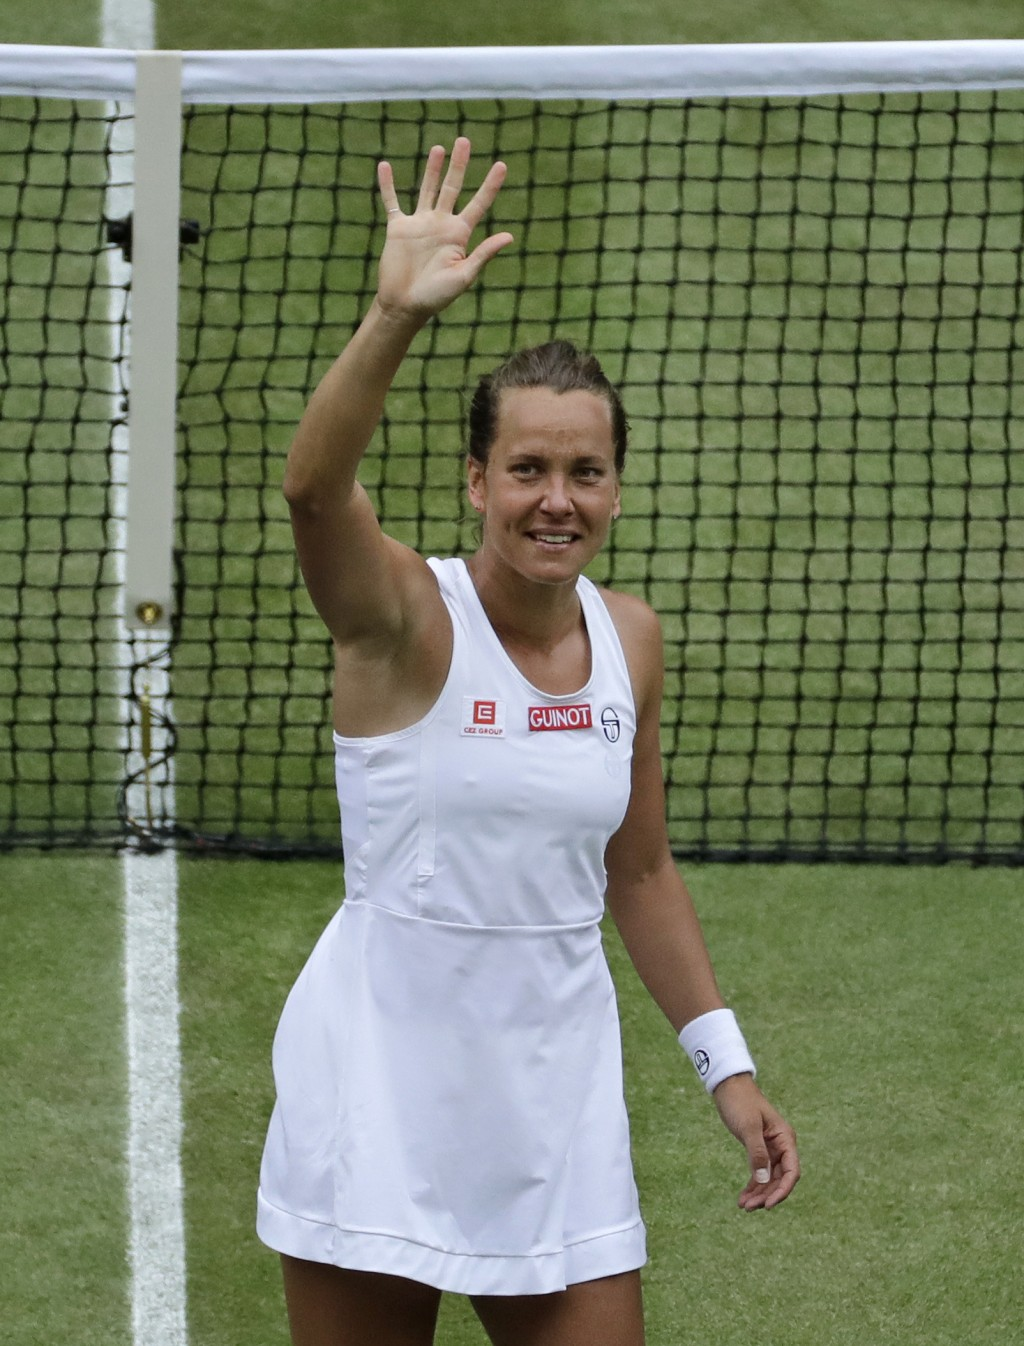 Czech Republic's Barbora Strycova celebrates after beating Britain's Johanna Konta in a Women's quarterfinal singles match on day eight of the Wimbled